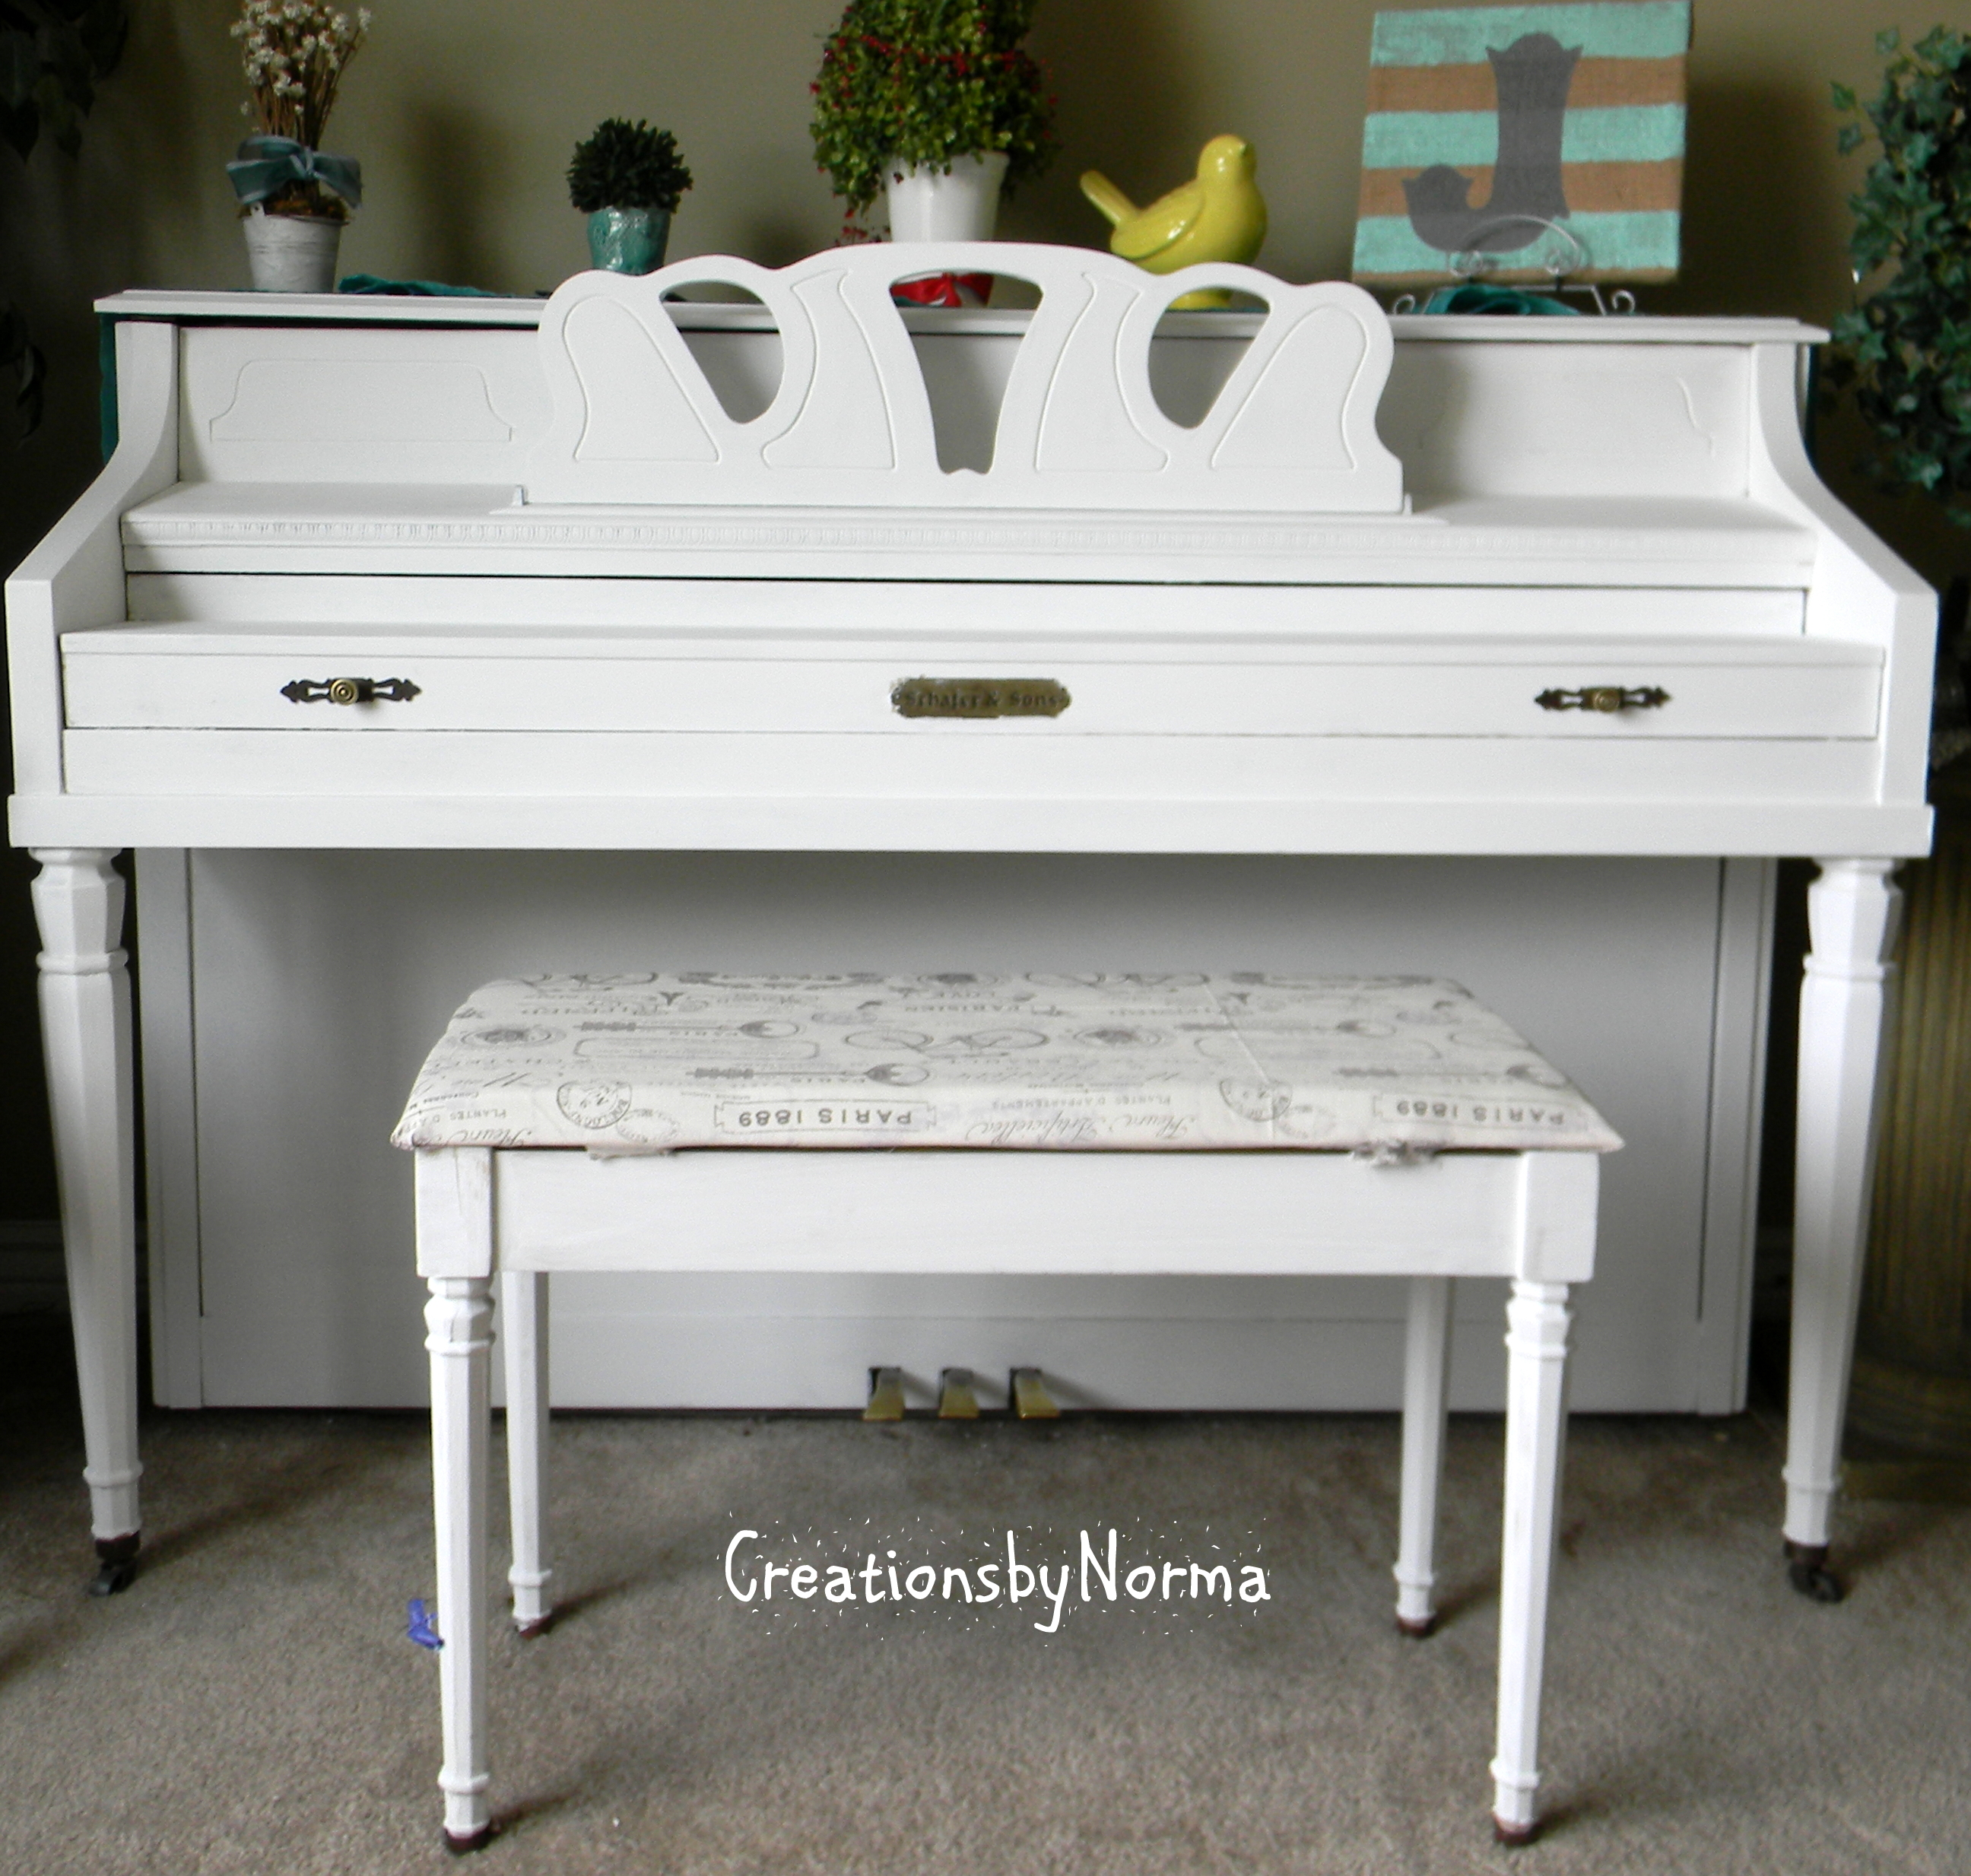 Ikea Expedit Chalk Paint Annie Sloan Chalk Paint Creations By Norma